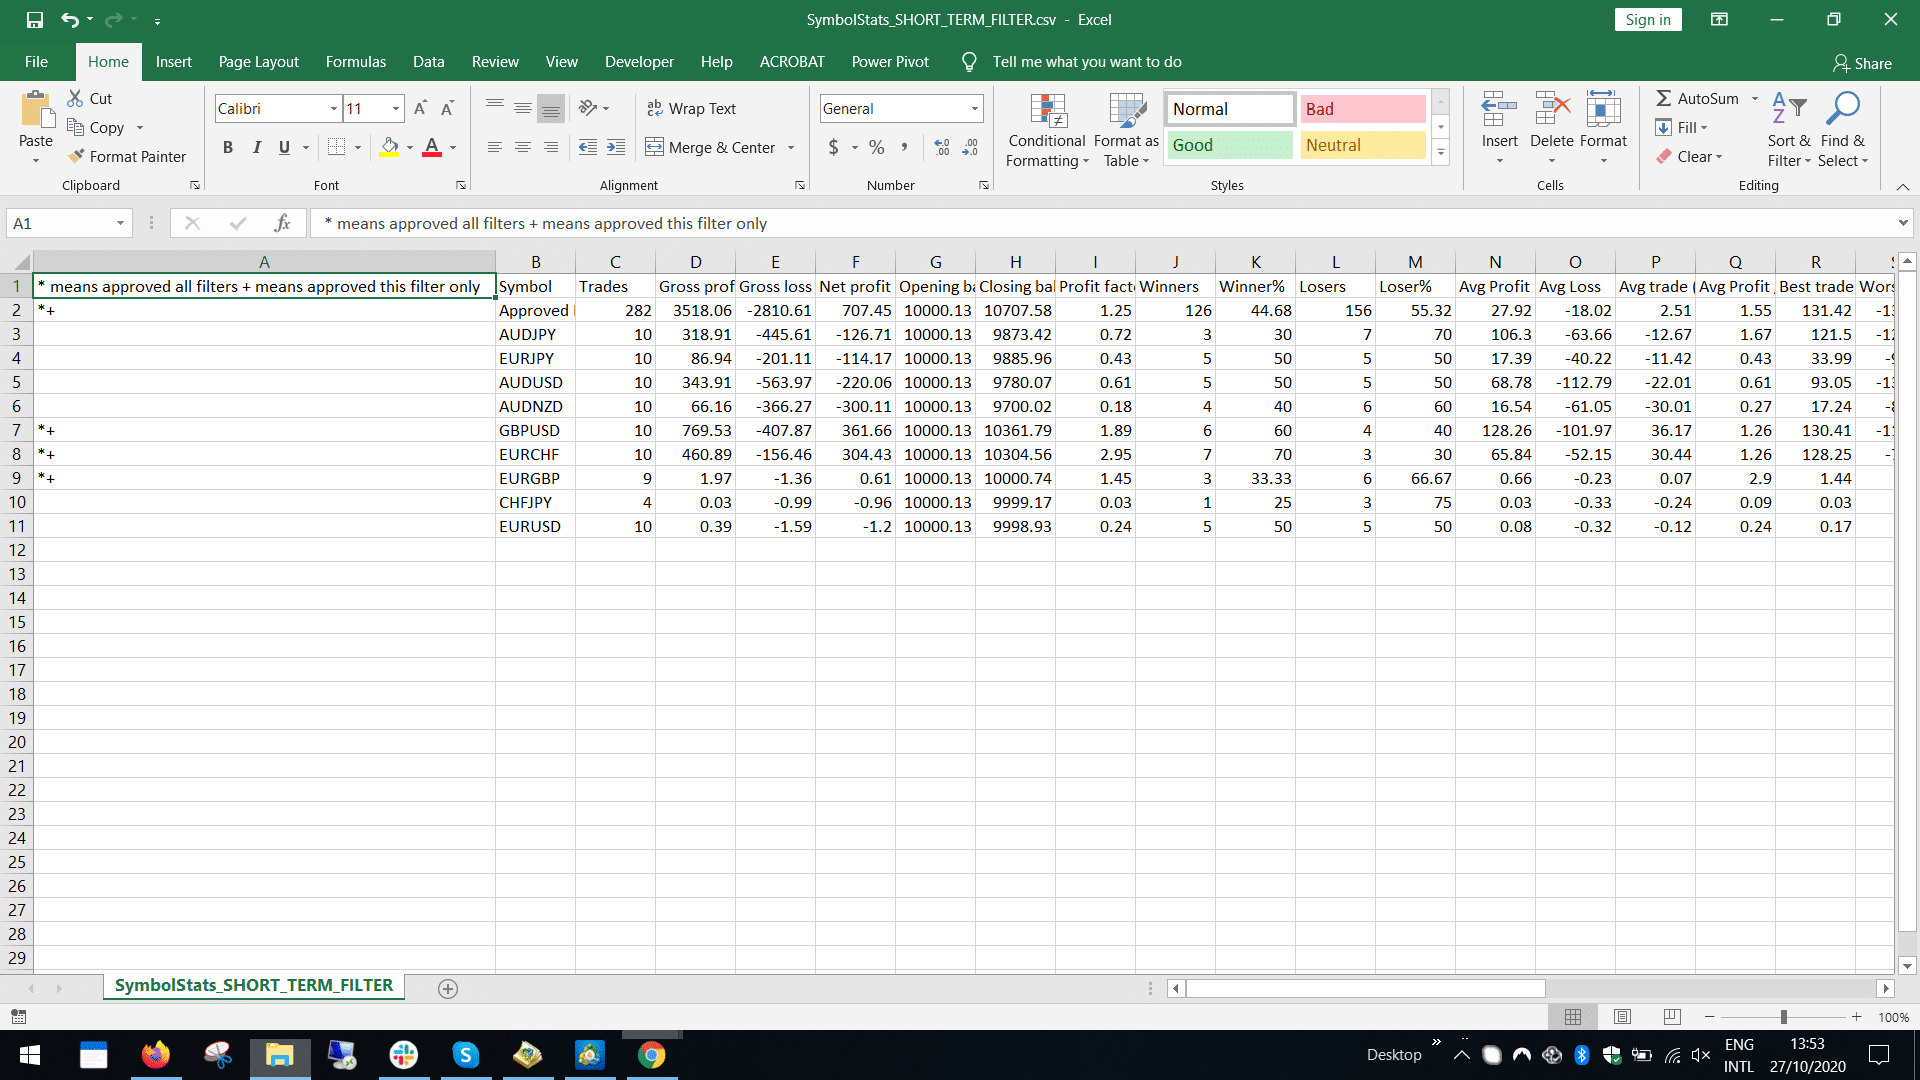 Strategy Samurai outputted short term symbol filter file for analysis